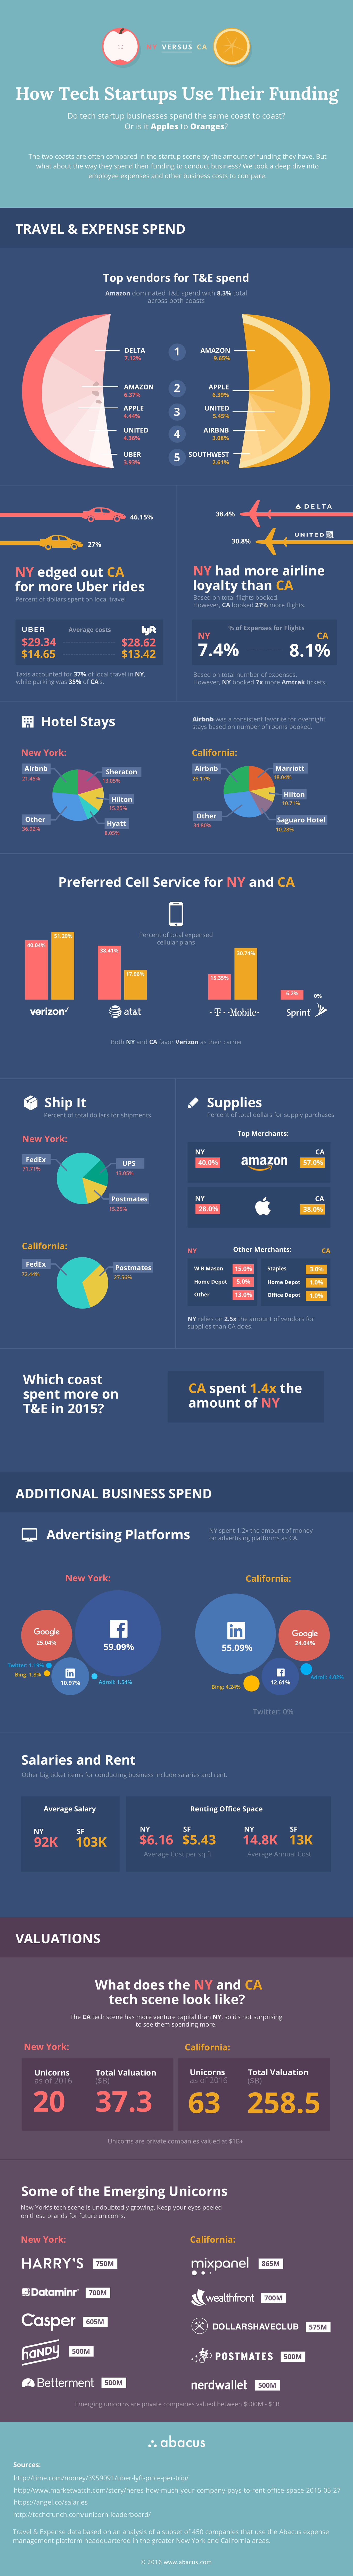 Abacus-2015-Business-Expense-Infographic